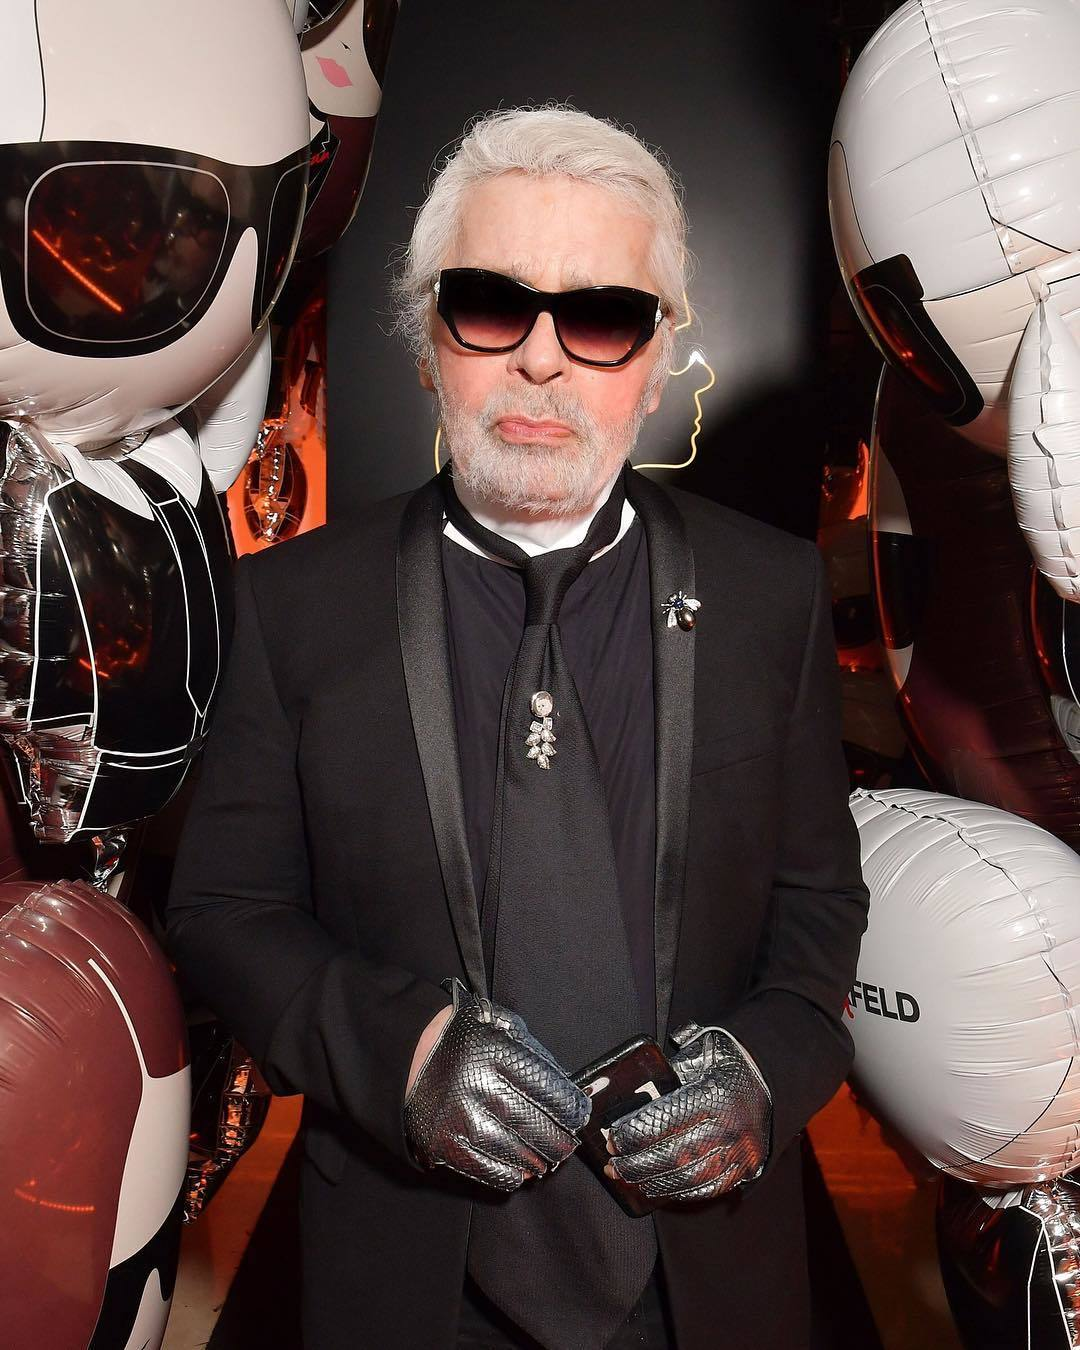 The World Is In Shock The Iconic Fashion Designer Karl Lagerfeld Went To Heaven Luxury Prague Life